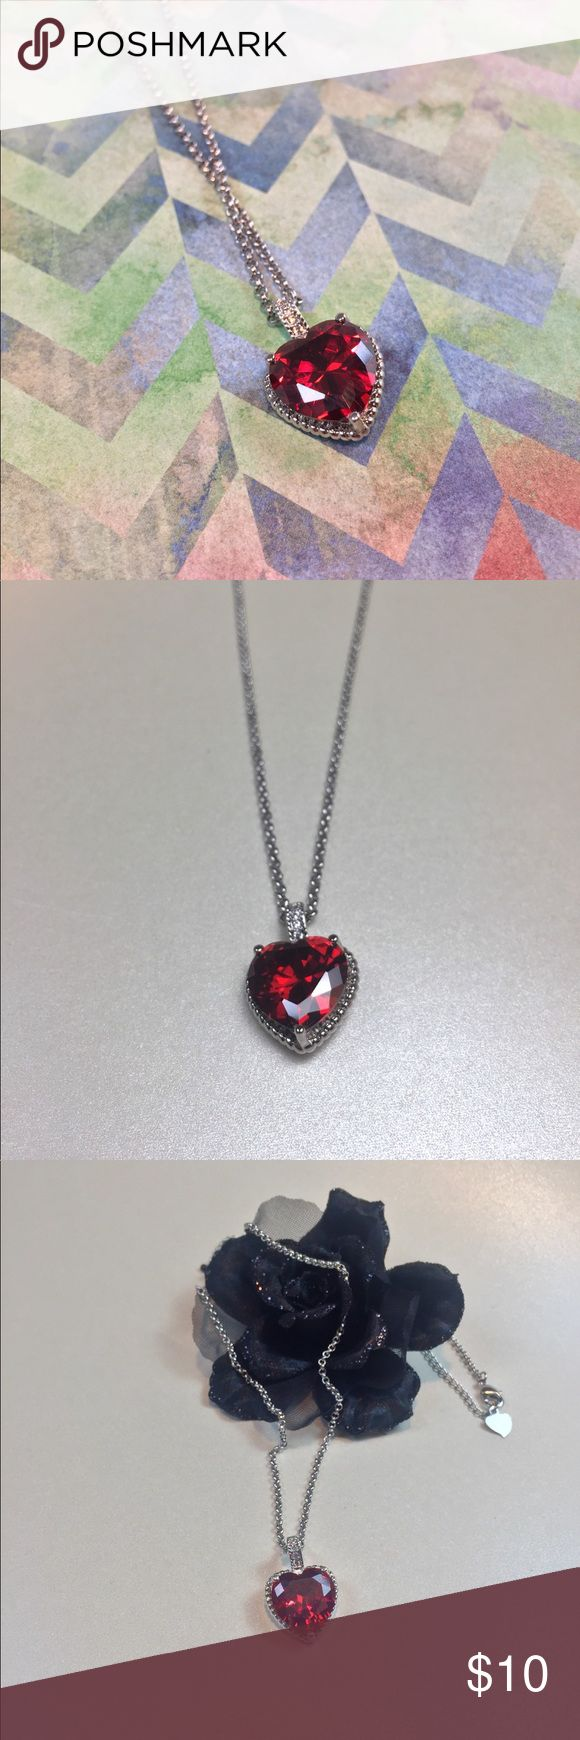 Red Rhinestone Heart Fashion Necklace Adorable fashion necklace with a ruby red ❤️ rhinestone and clear crystals  Brand unknown Jewelry Necklaces